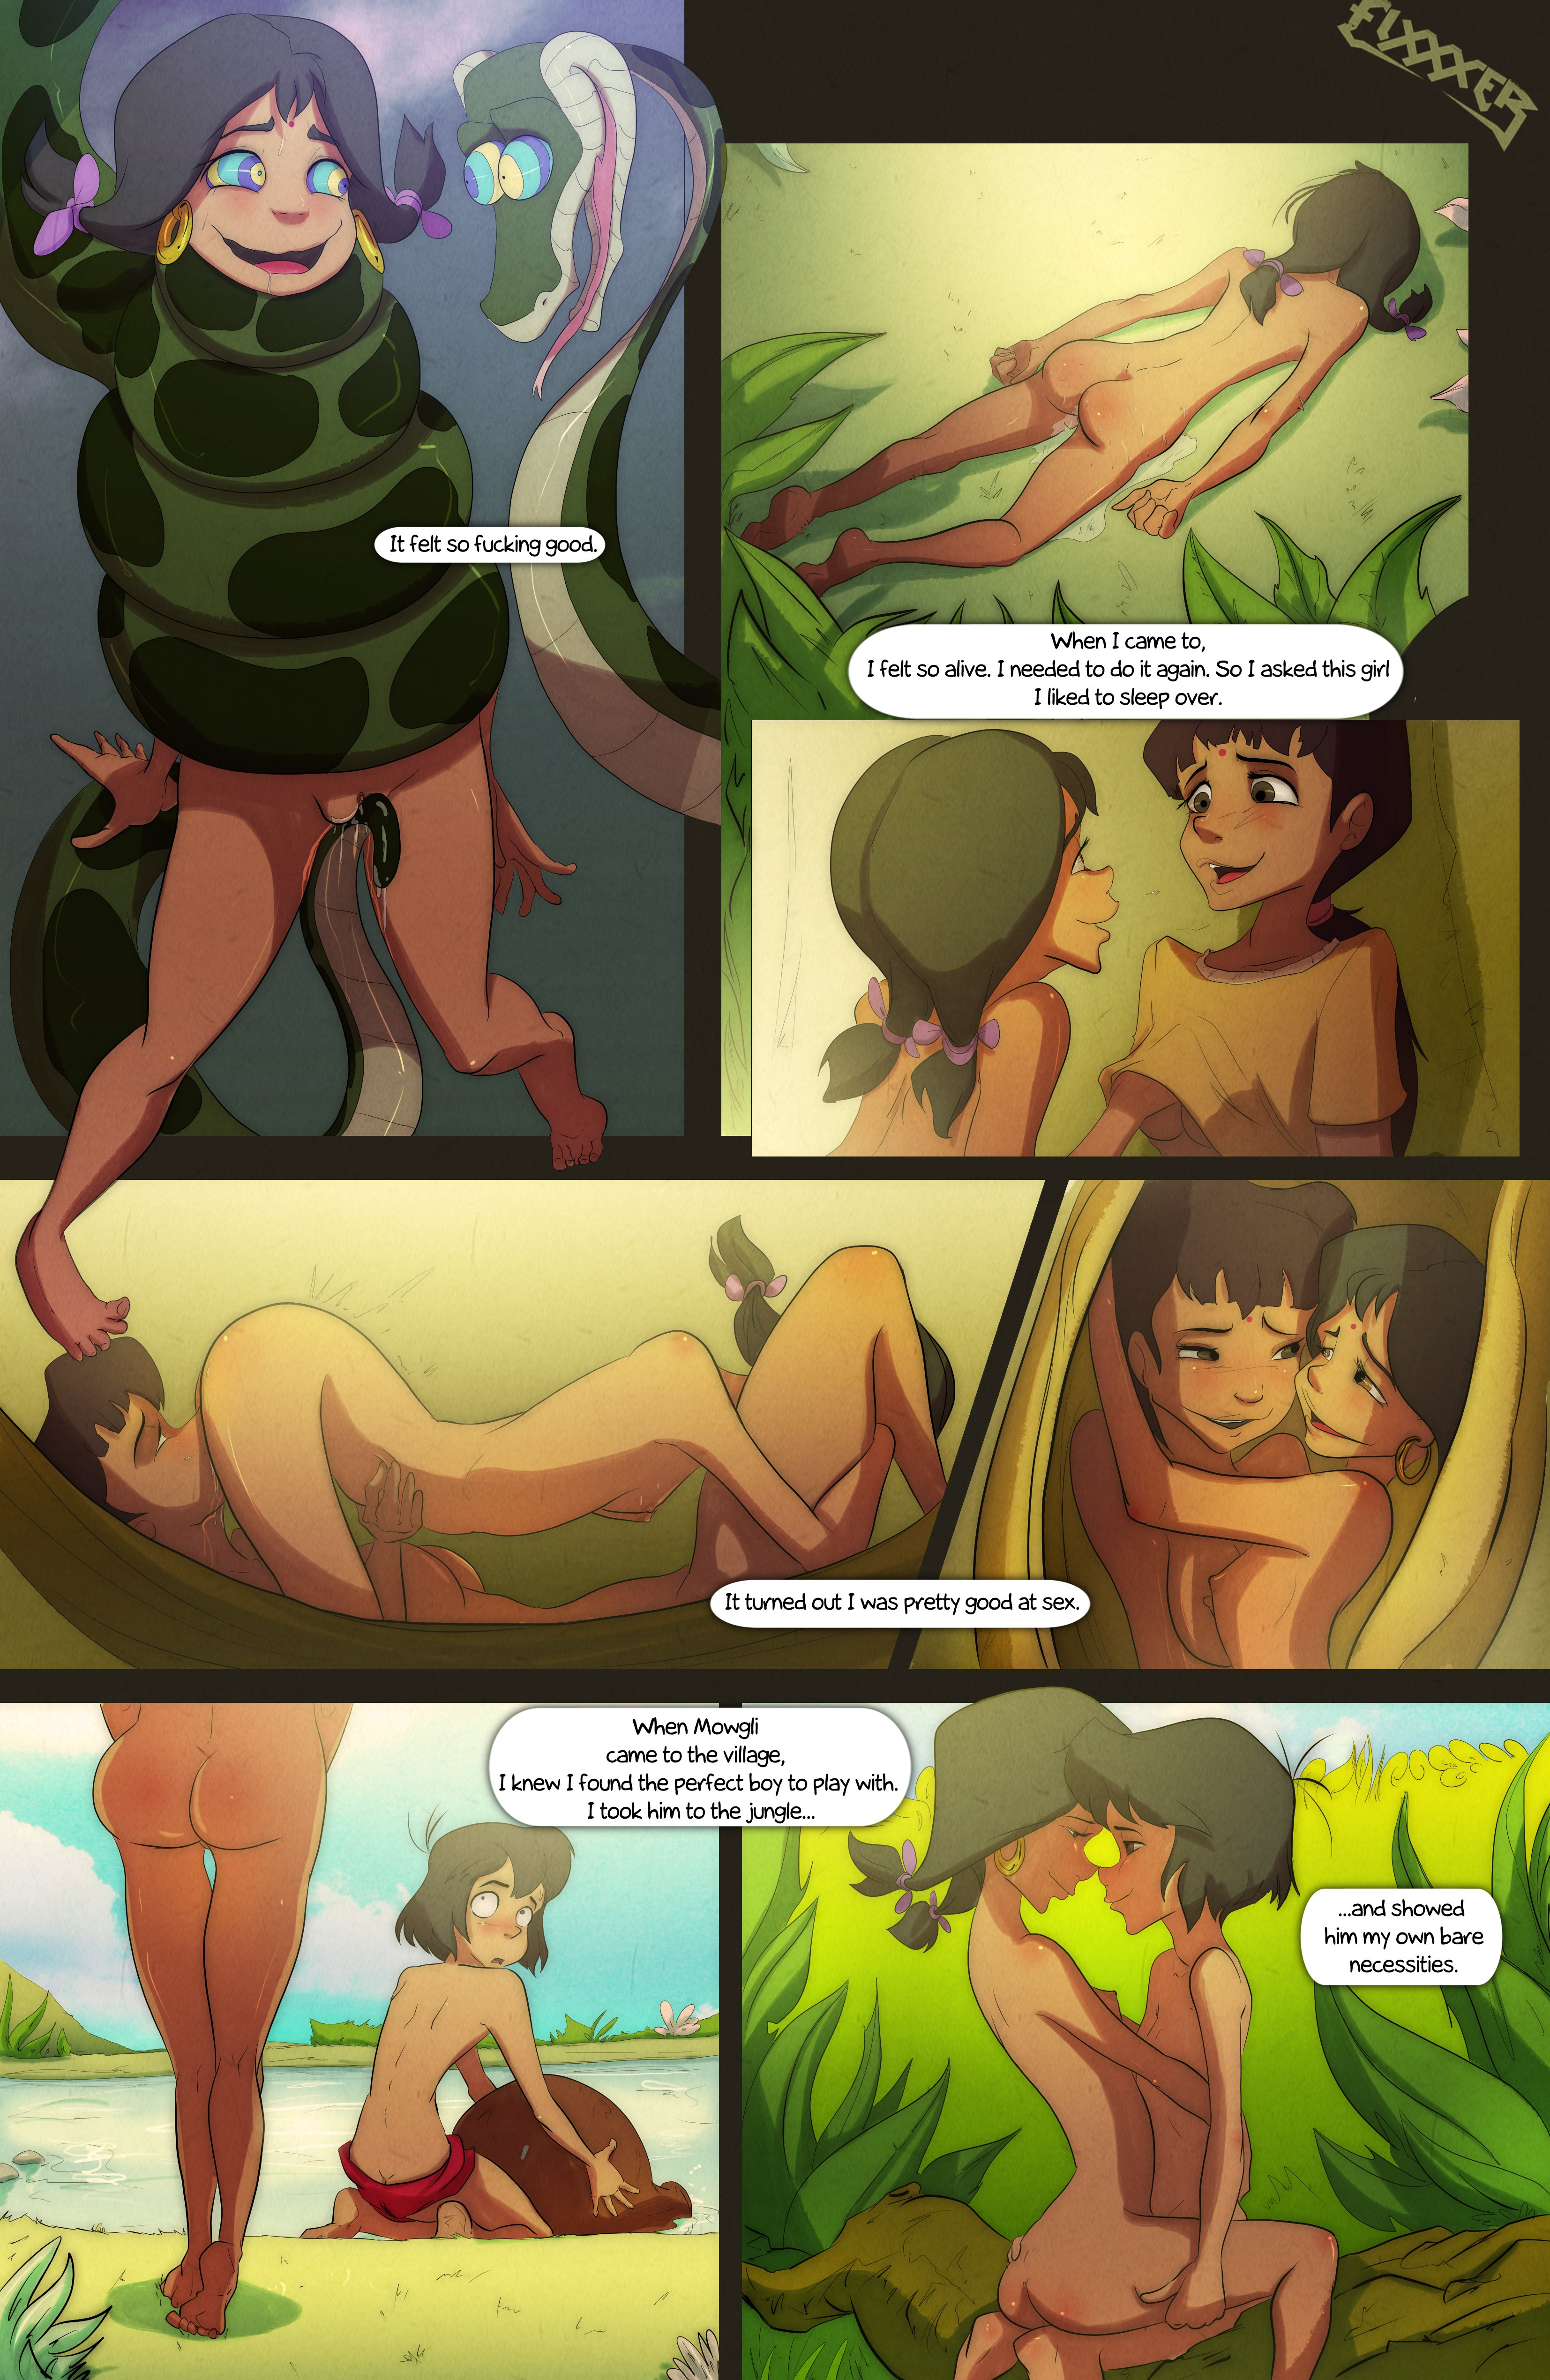 [Fixxxer] Bare Necessities (The Jungle Book) Hentai Online ...